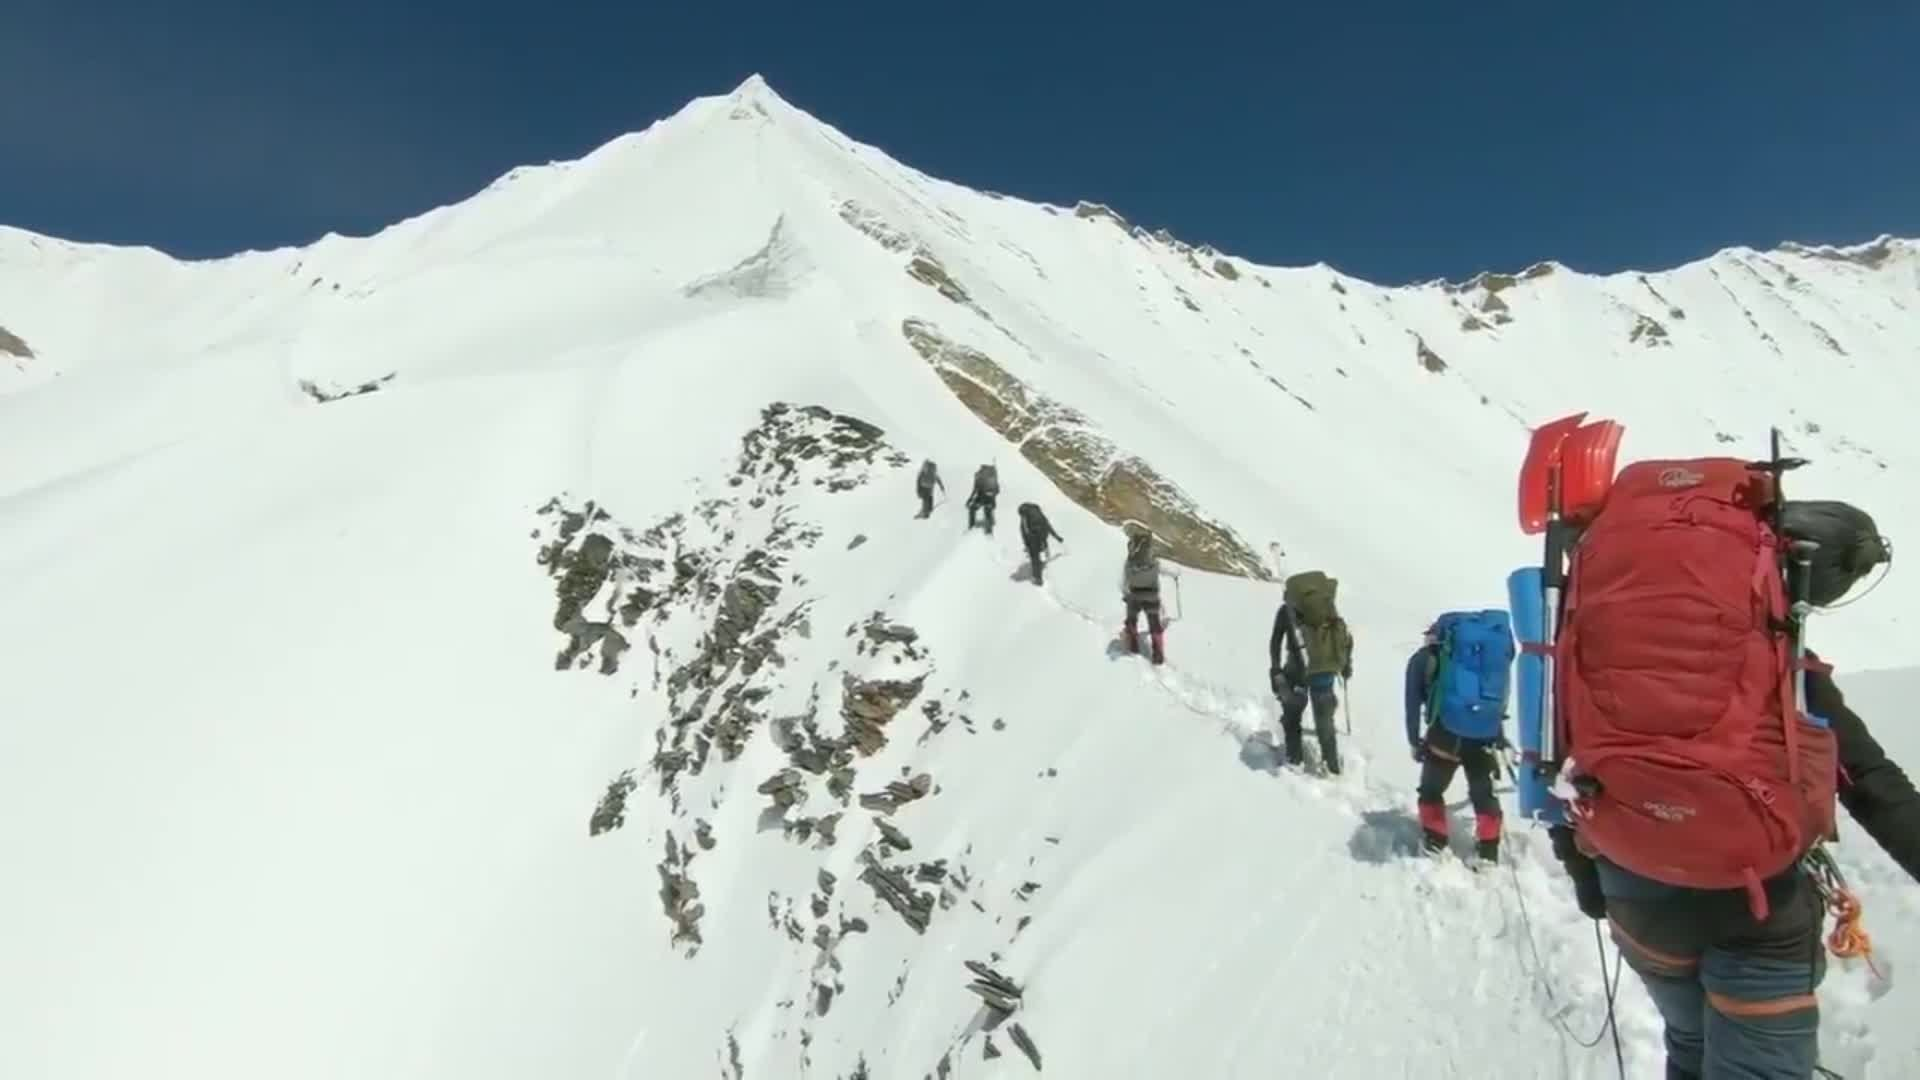 Recovered GoPro video shows final moments of Himalayas climbers